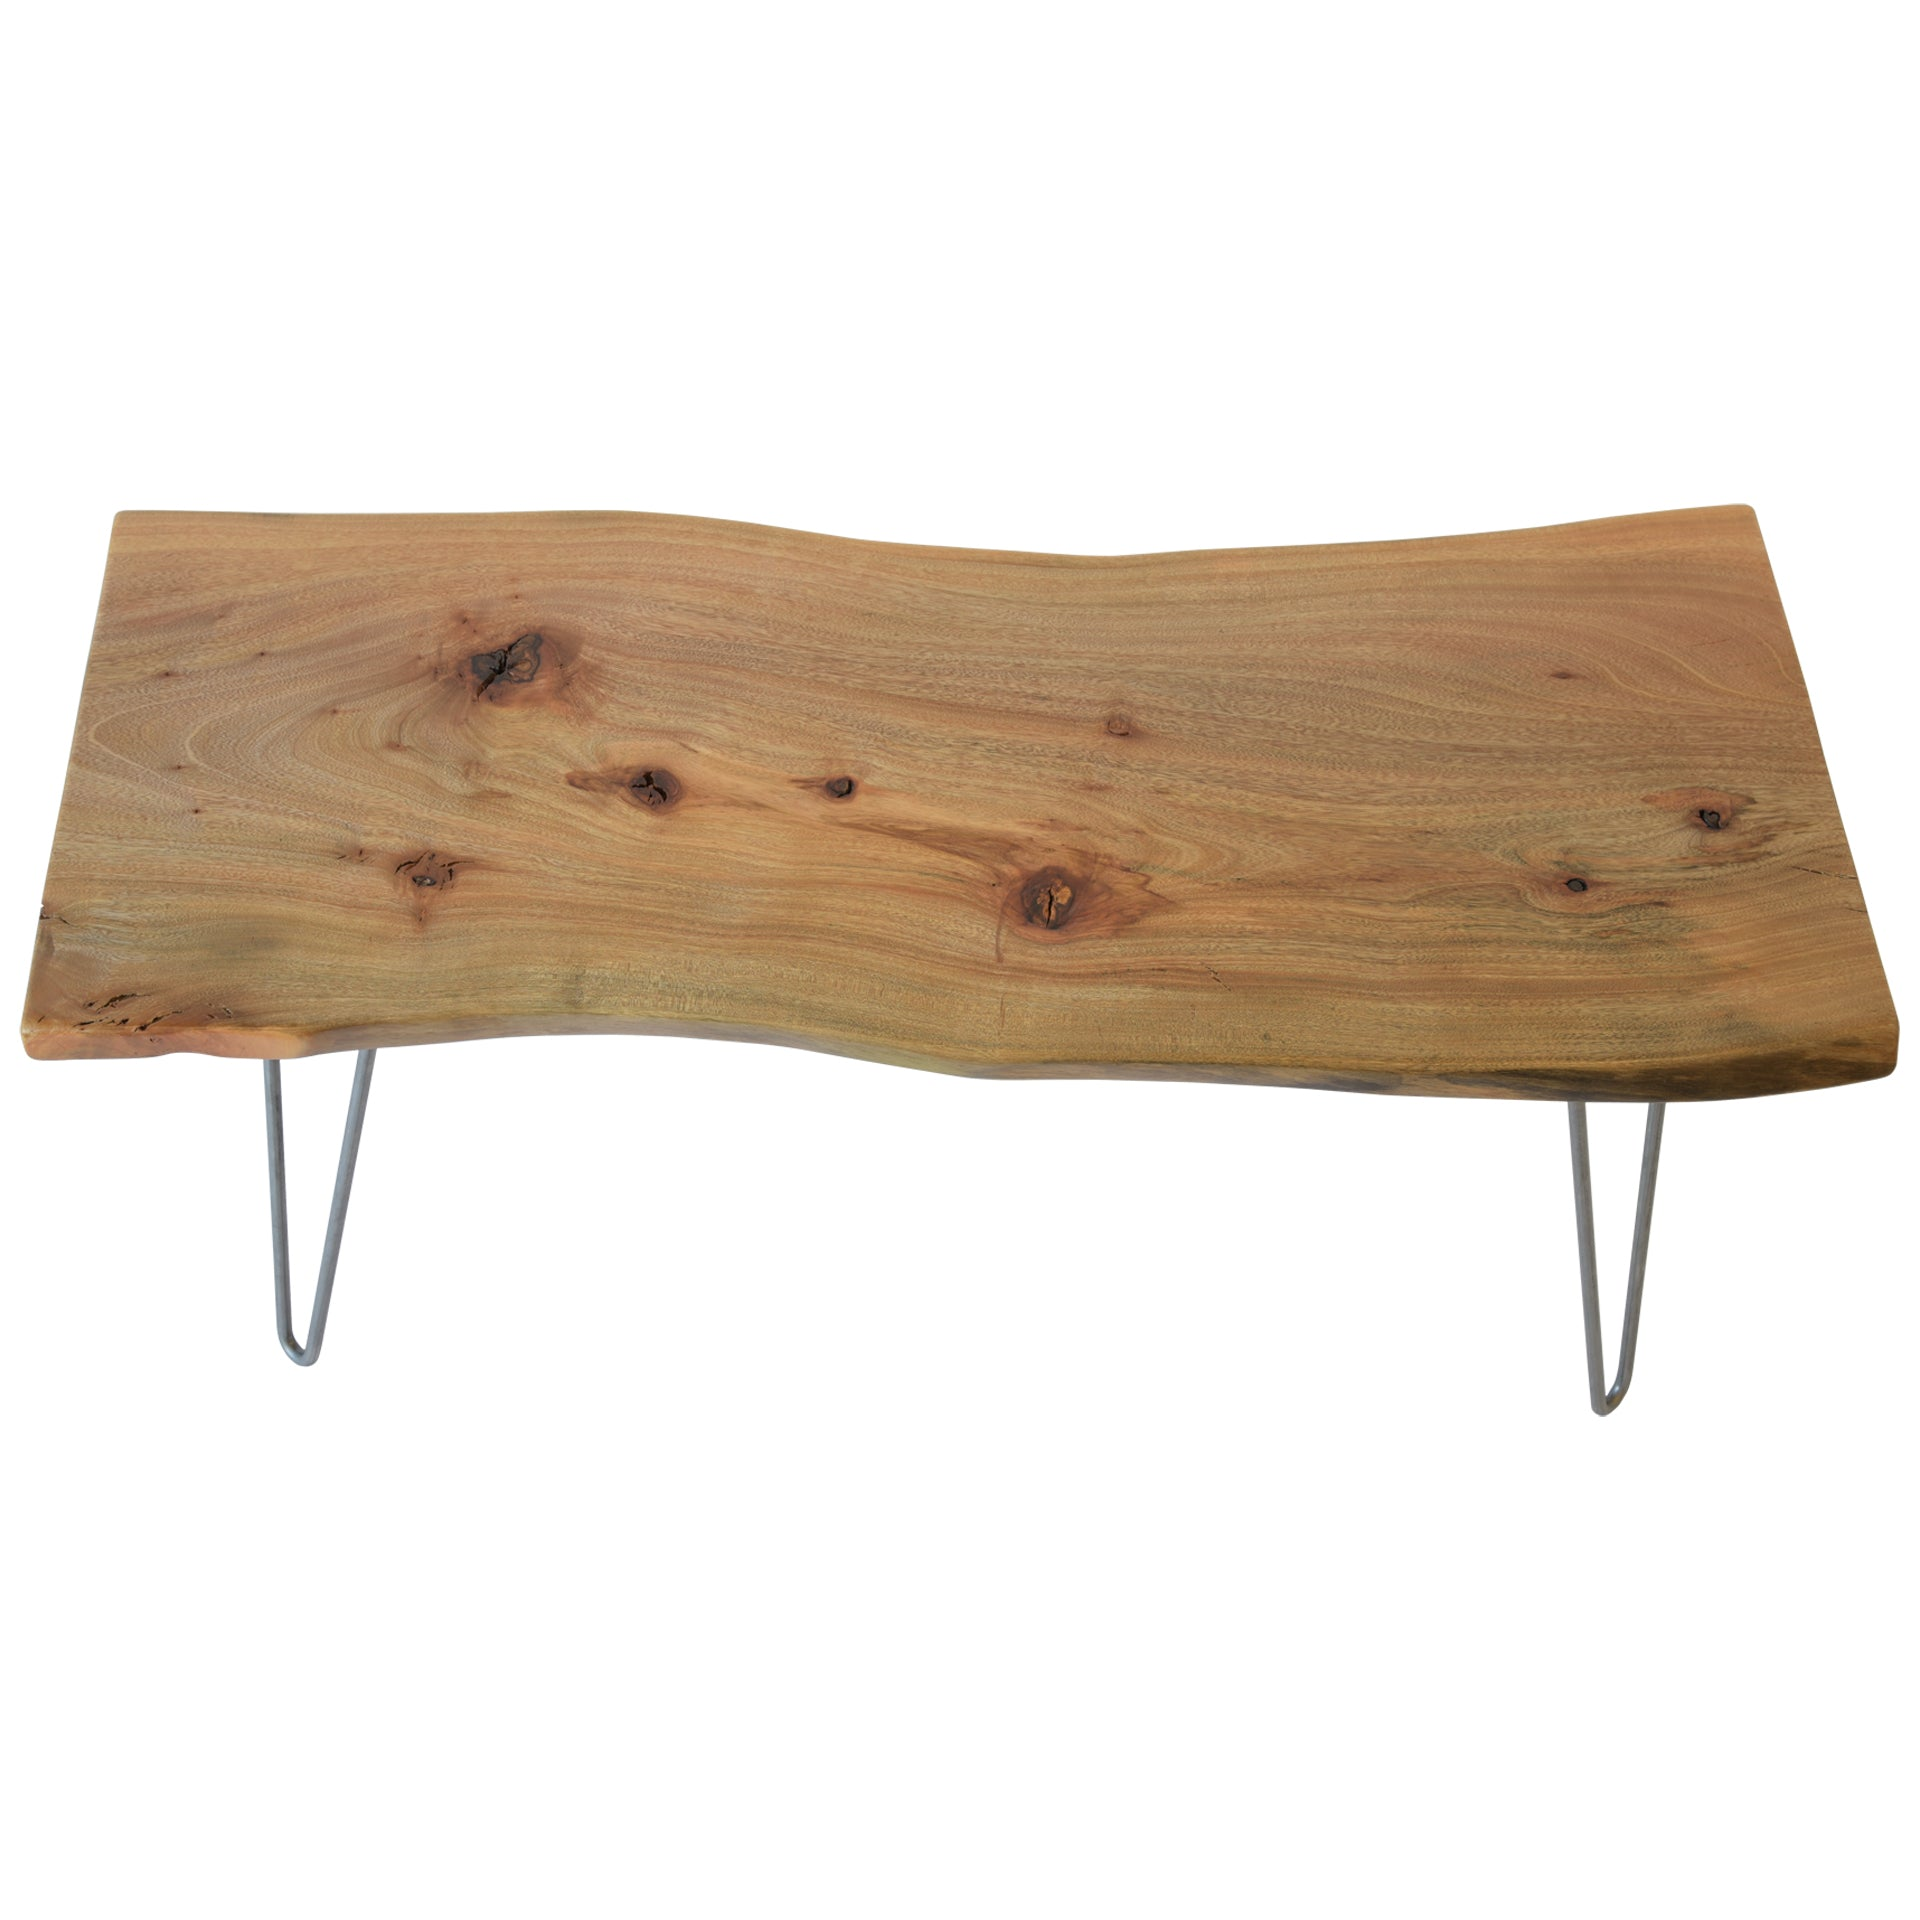 Light Live Edge Slab Rustic Coffee Table